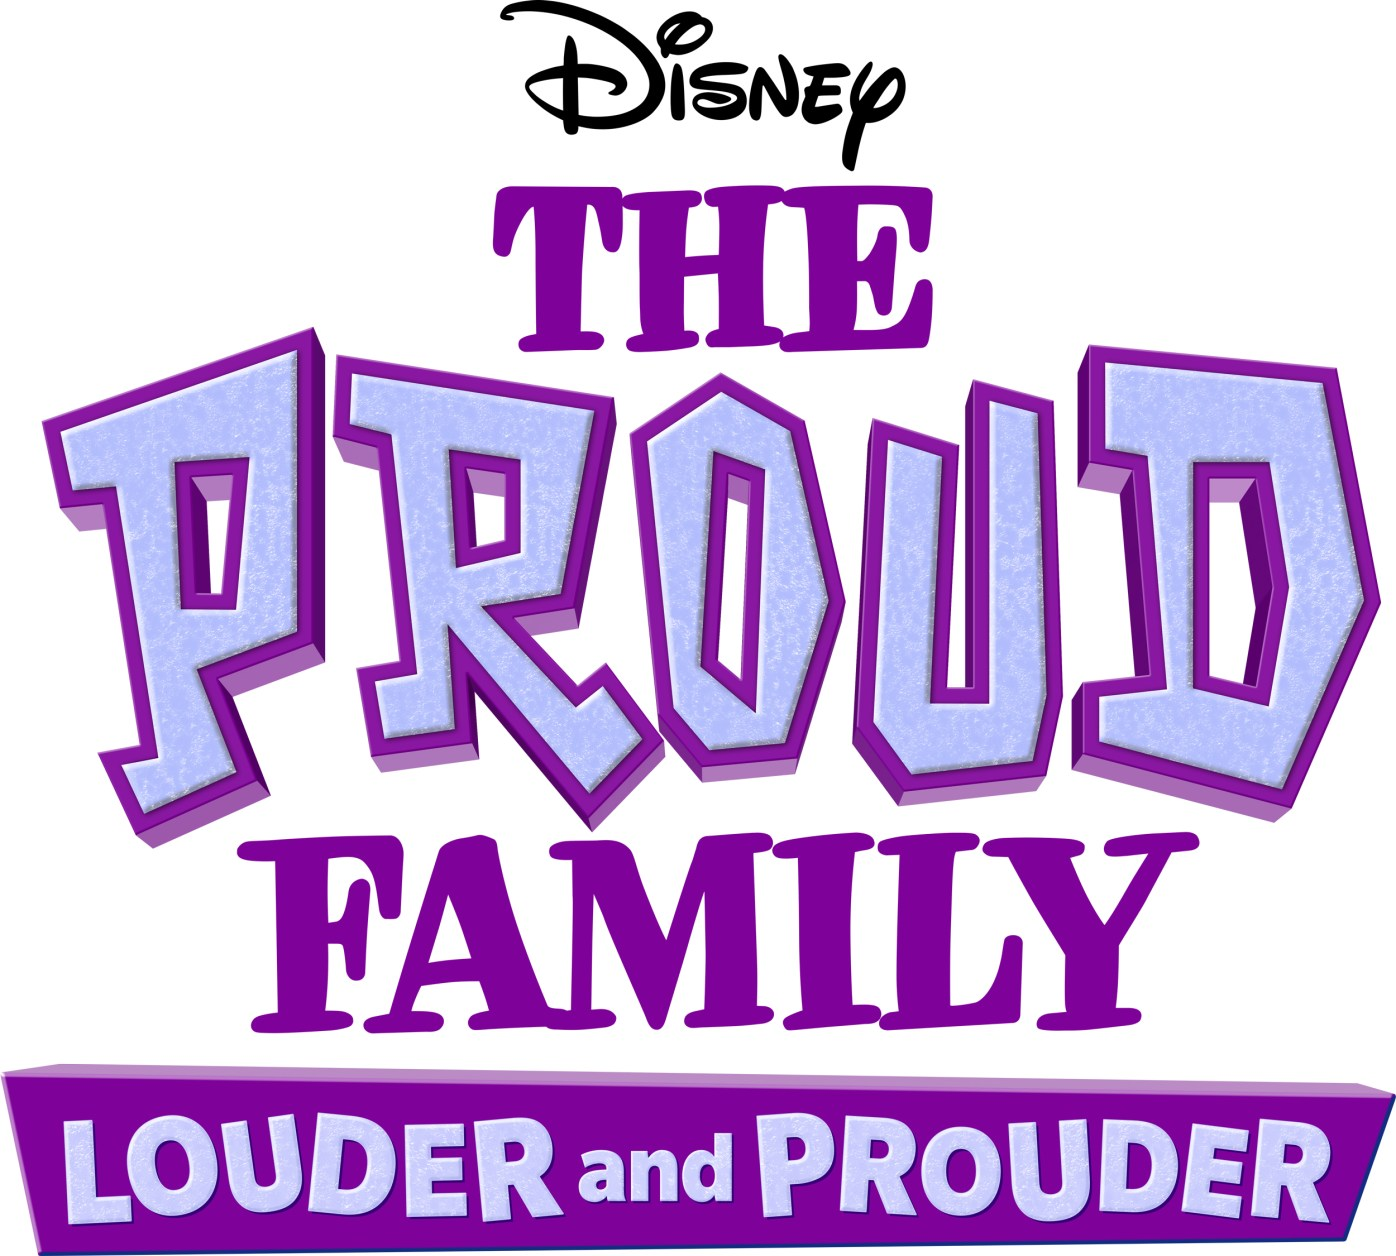 THE PROUD FAMILY: LOUDER AND PROUDER - Logo. (Disney+)